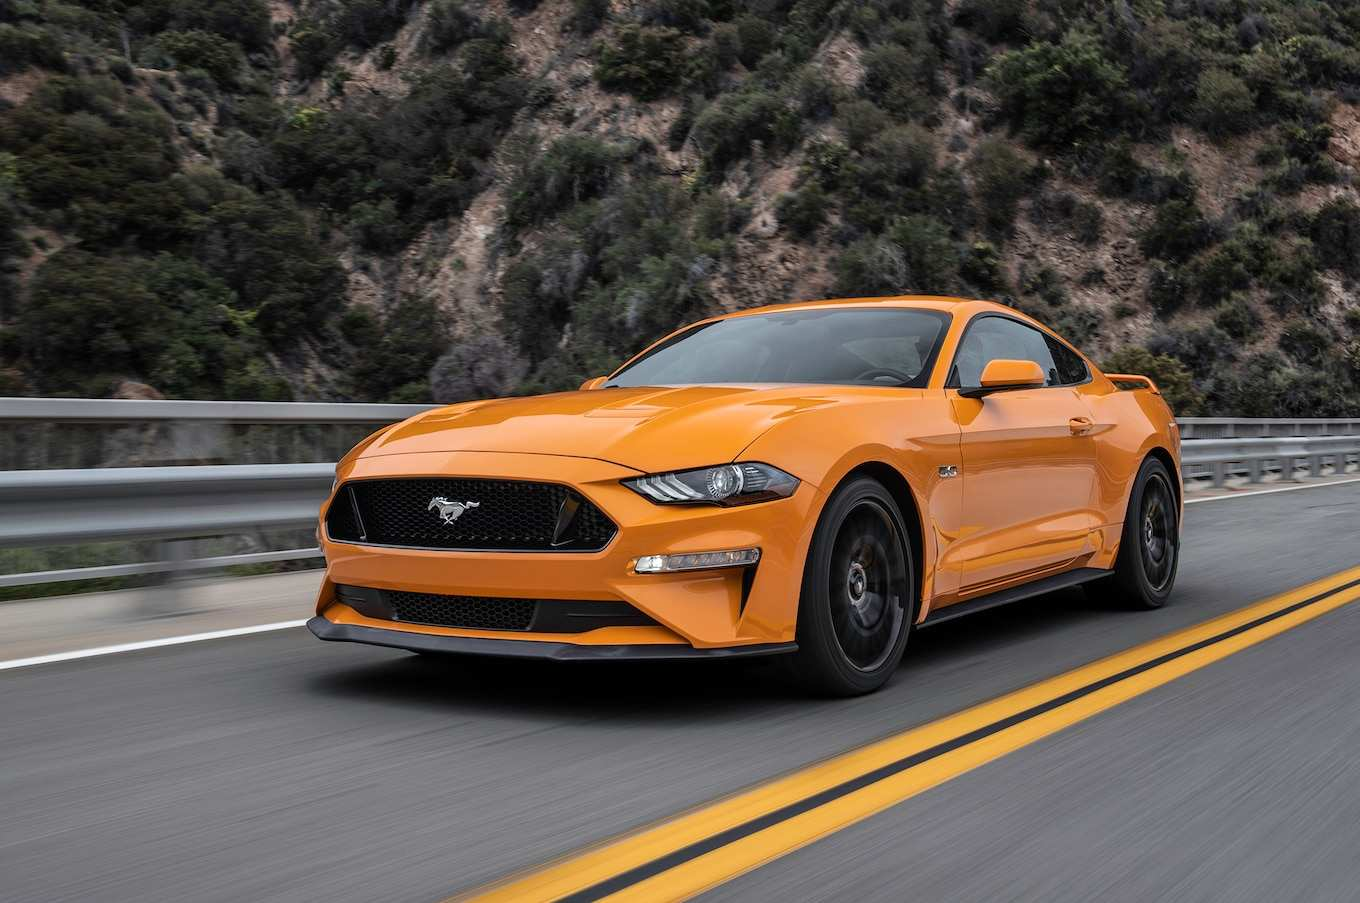 36 The Best 2019 Mustang Mach Picture